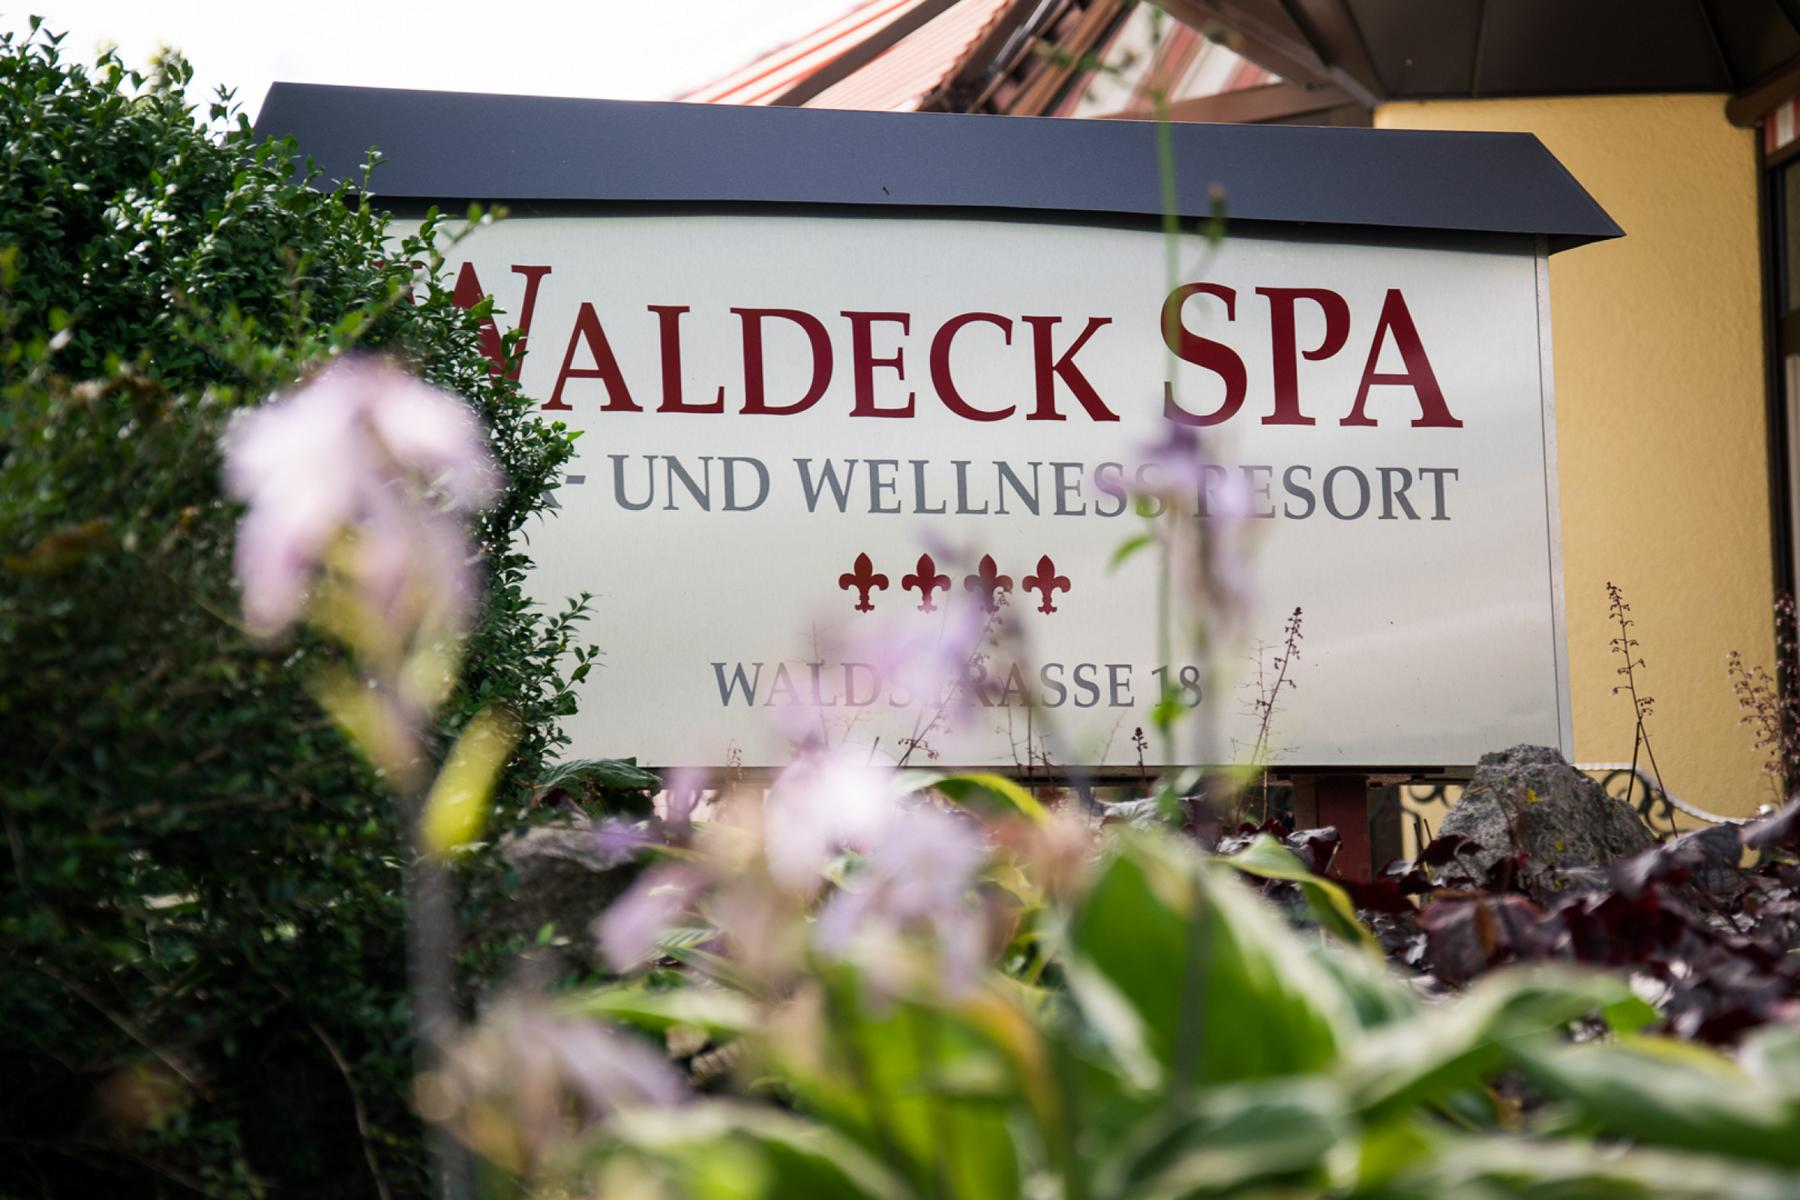 Waldeck SPA Kur Wellness Resort Gutschein